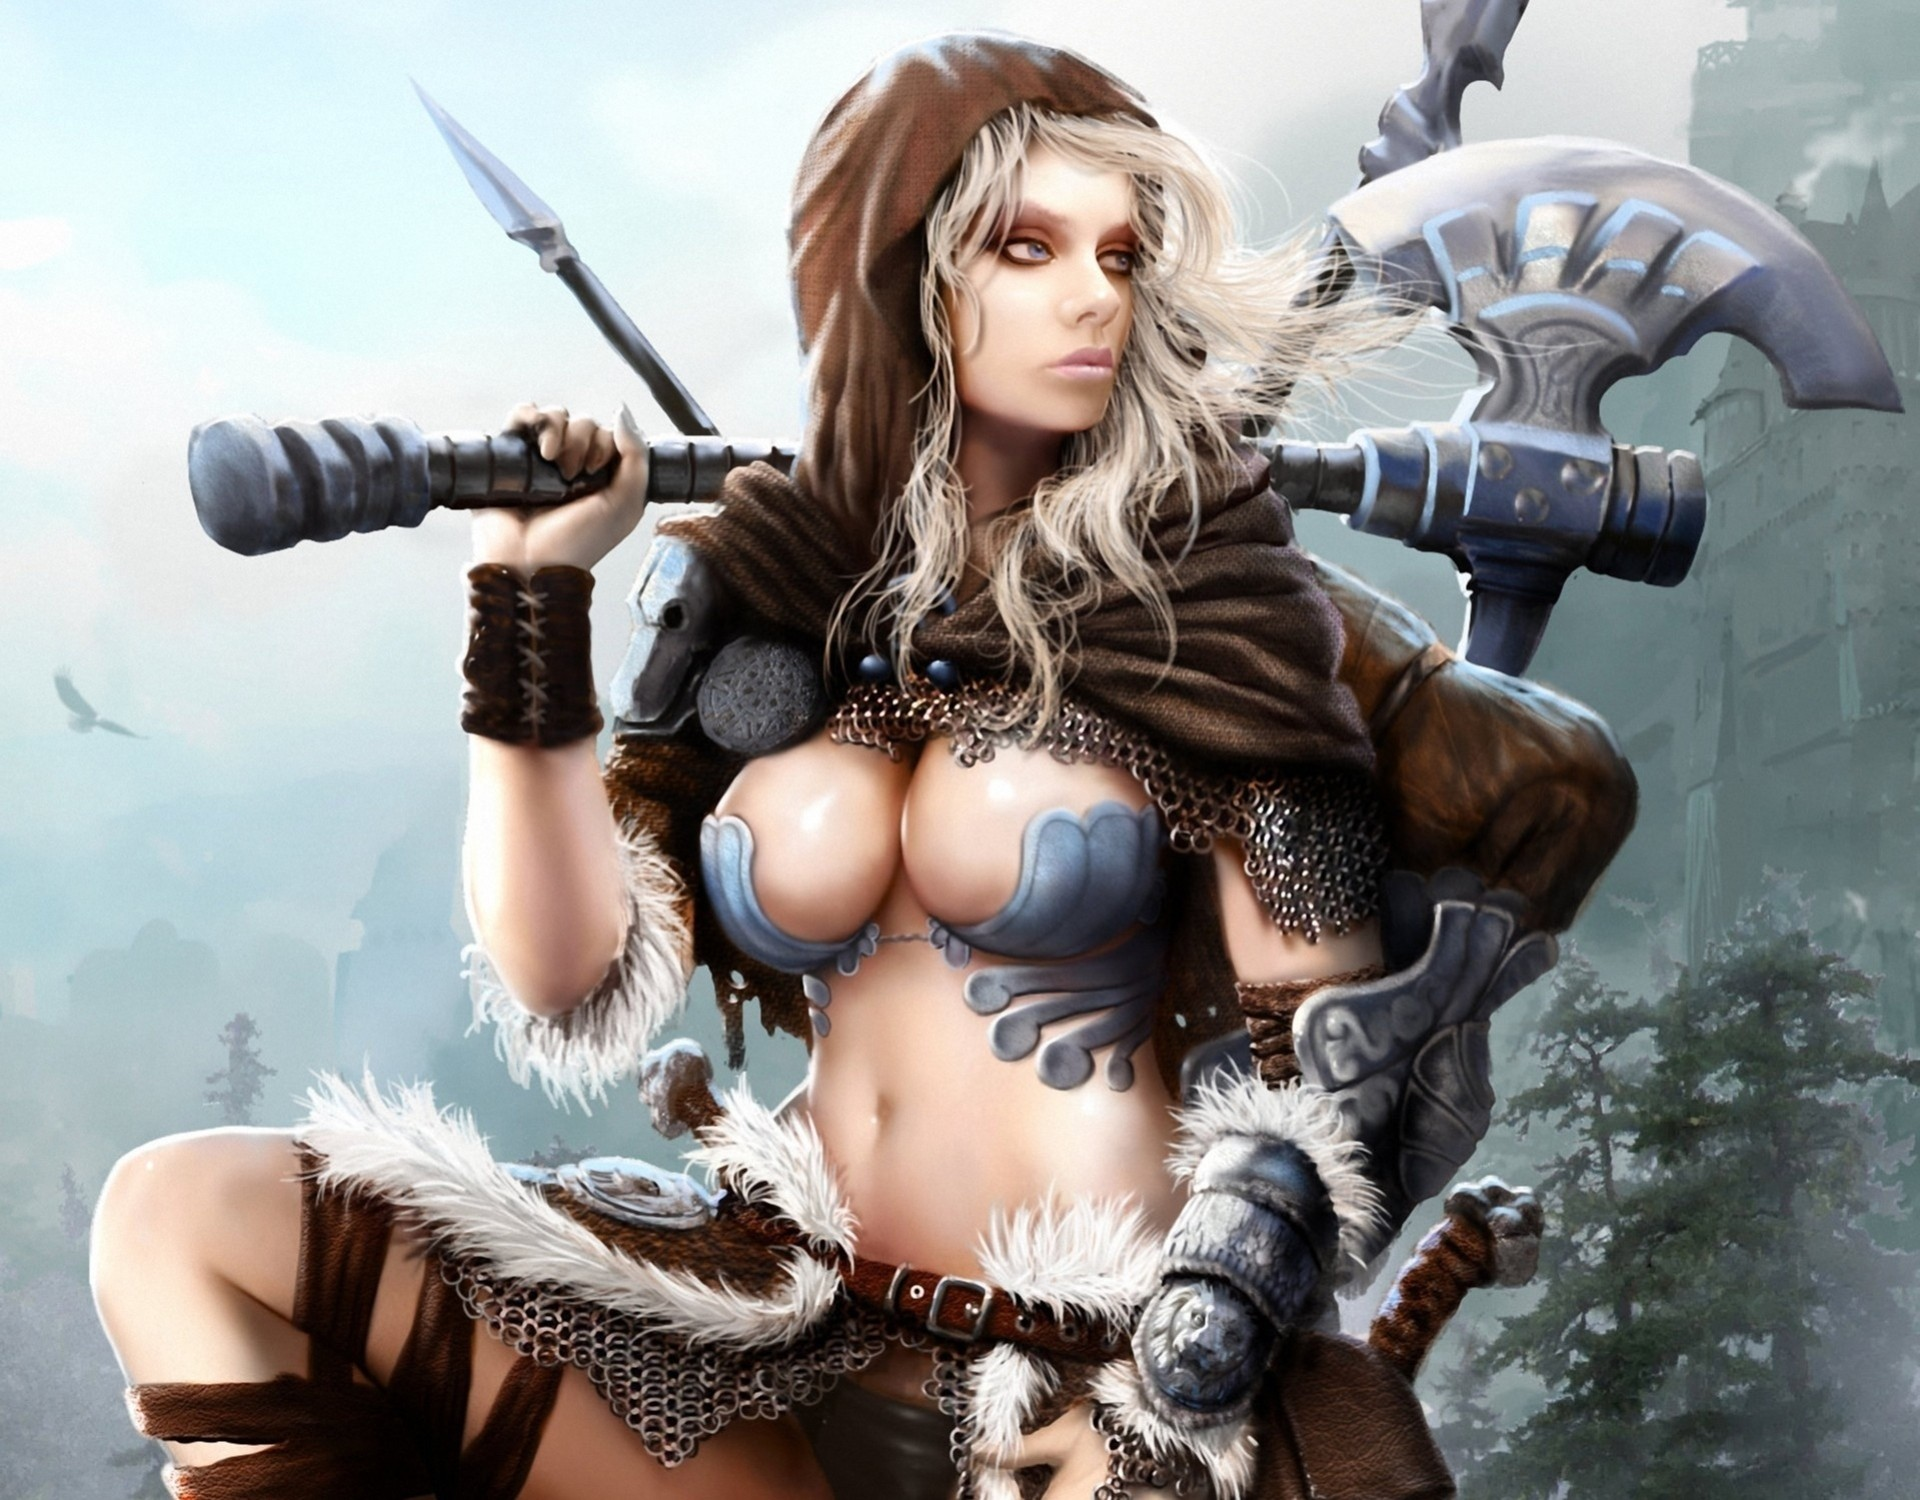 Warrior women big boobs pics — 12